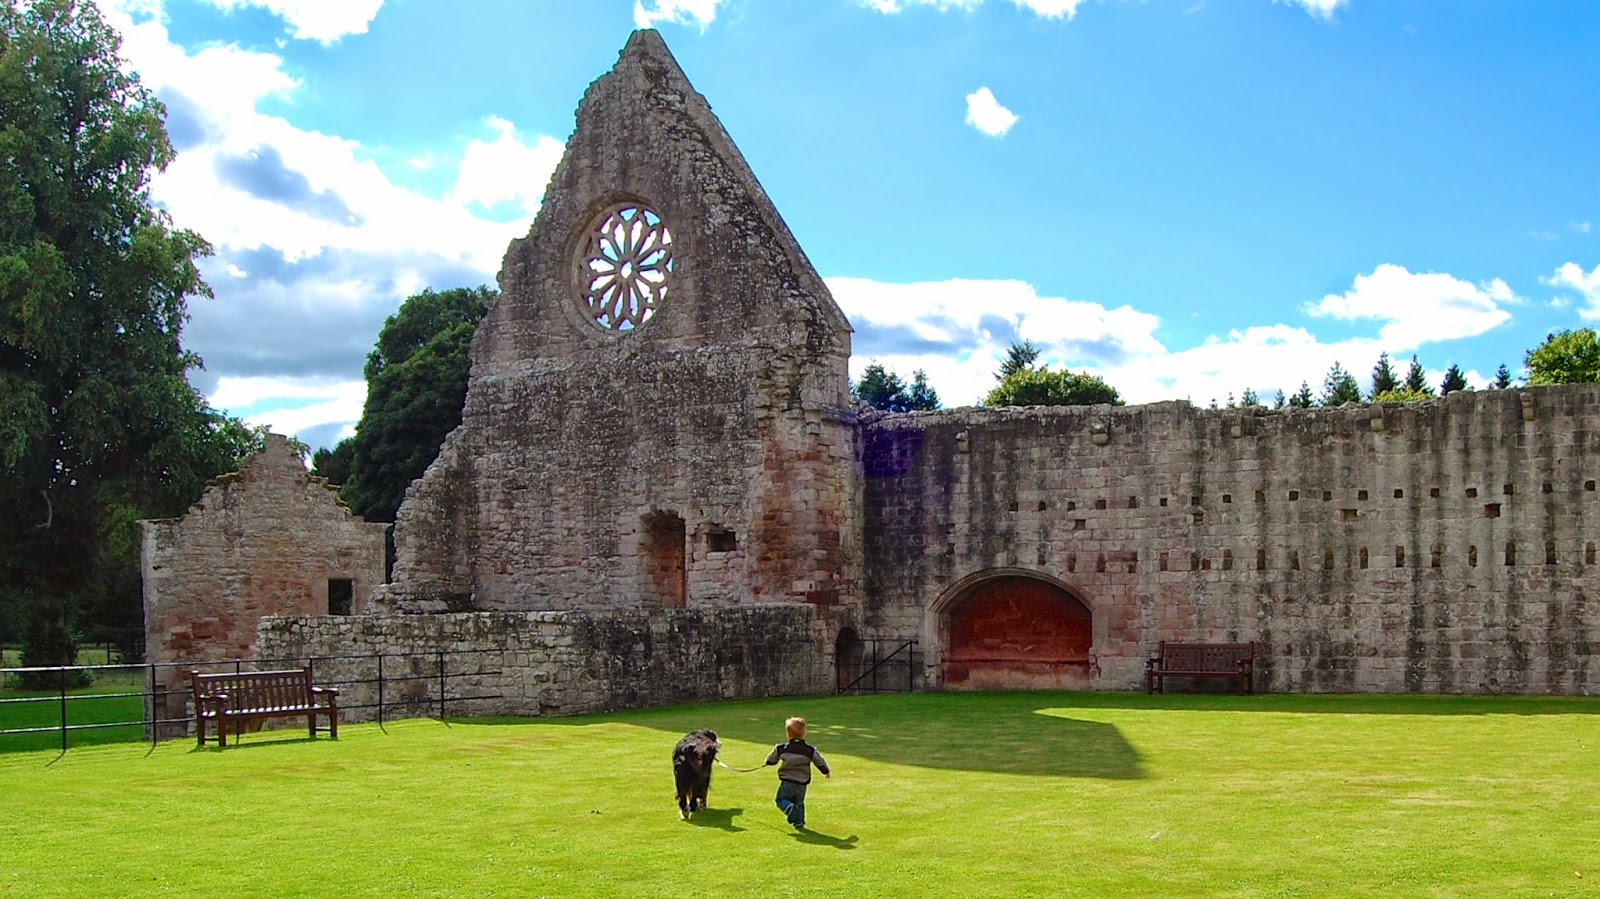 Mattie romping with Jackson at Dryburgh Abbey